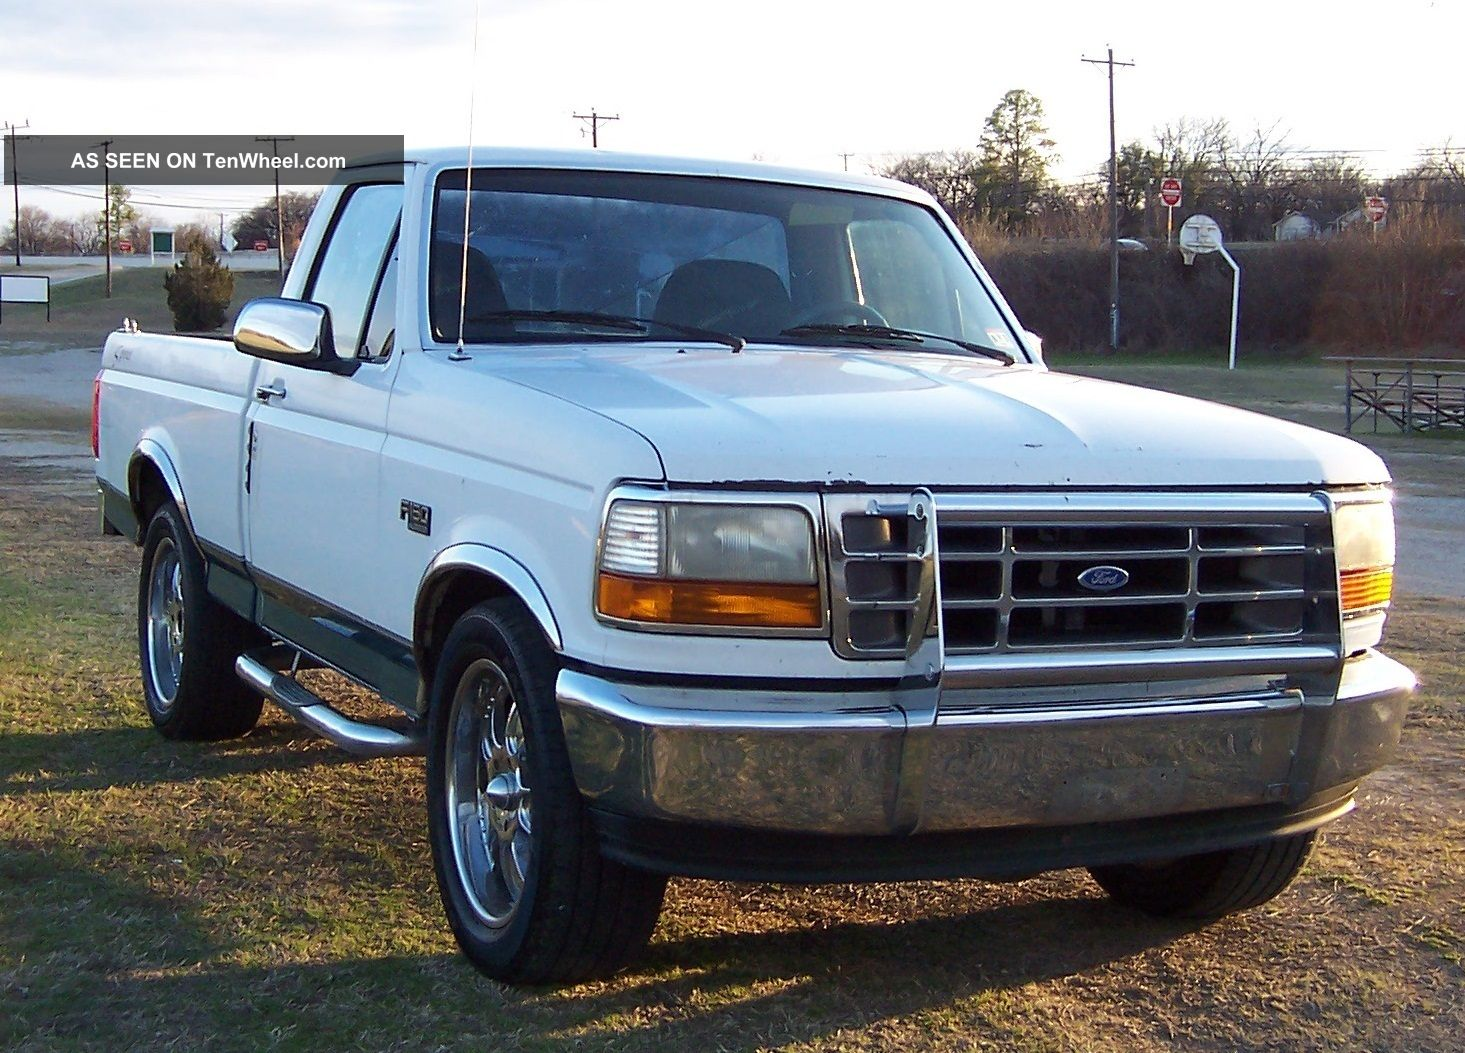 F150 Short Bed 28 Images 1979 Ford F150 4x4 Short Bed Step Side For Sale Ford F 1996 Ford